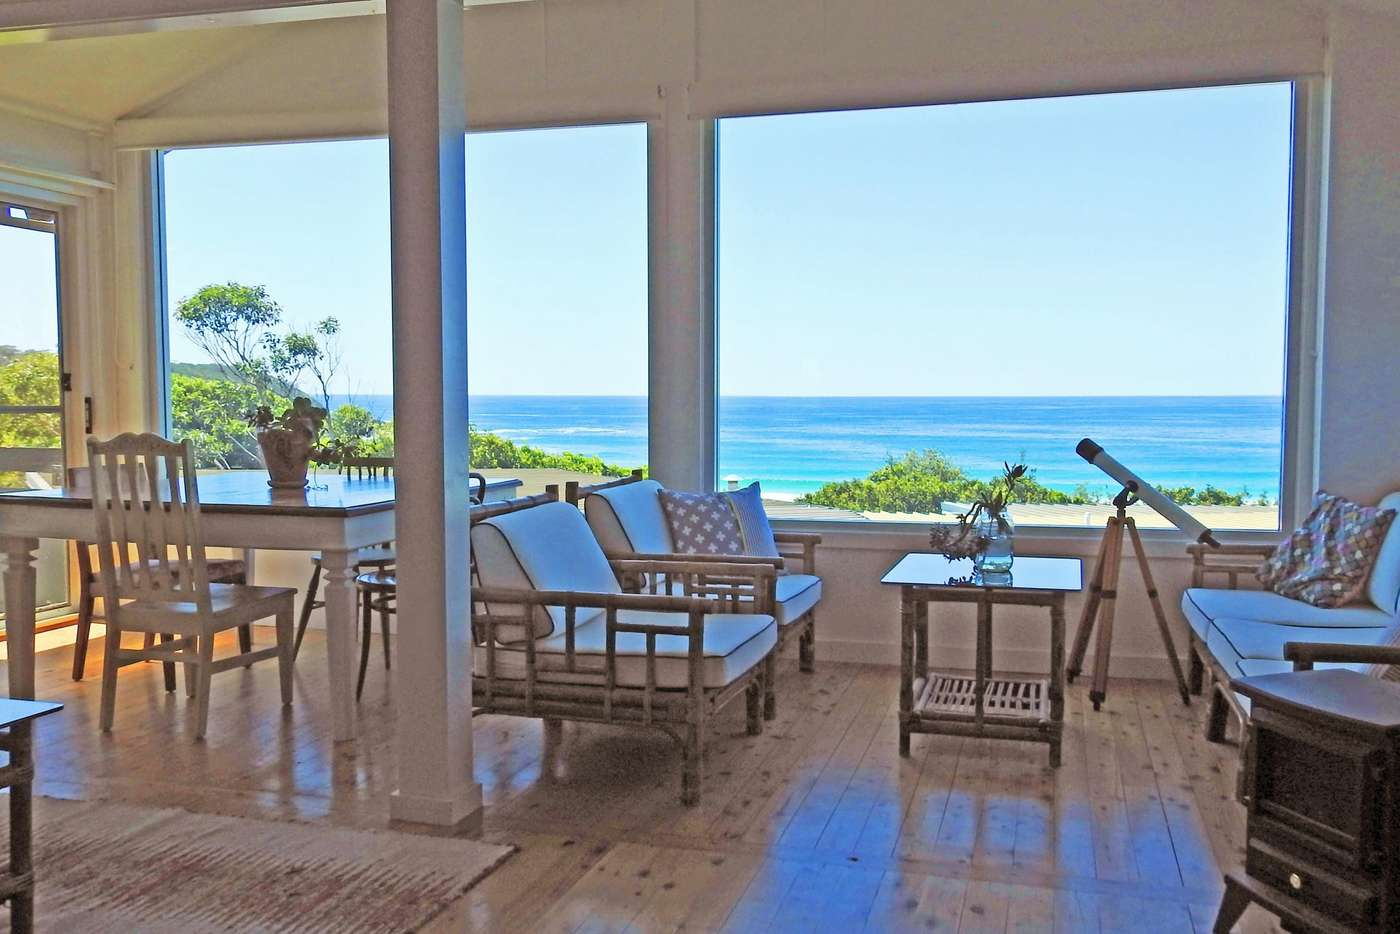 Main view of Homely house listing, 114 Mitchell Parade, Mollymook Beach NSW 2539